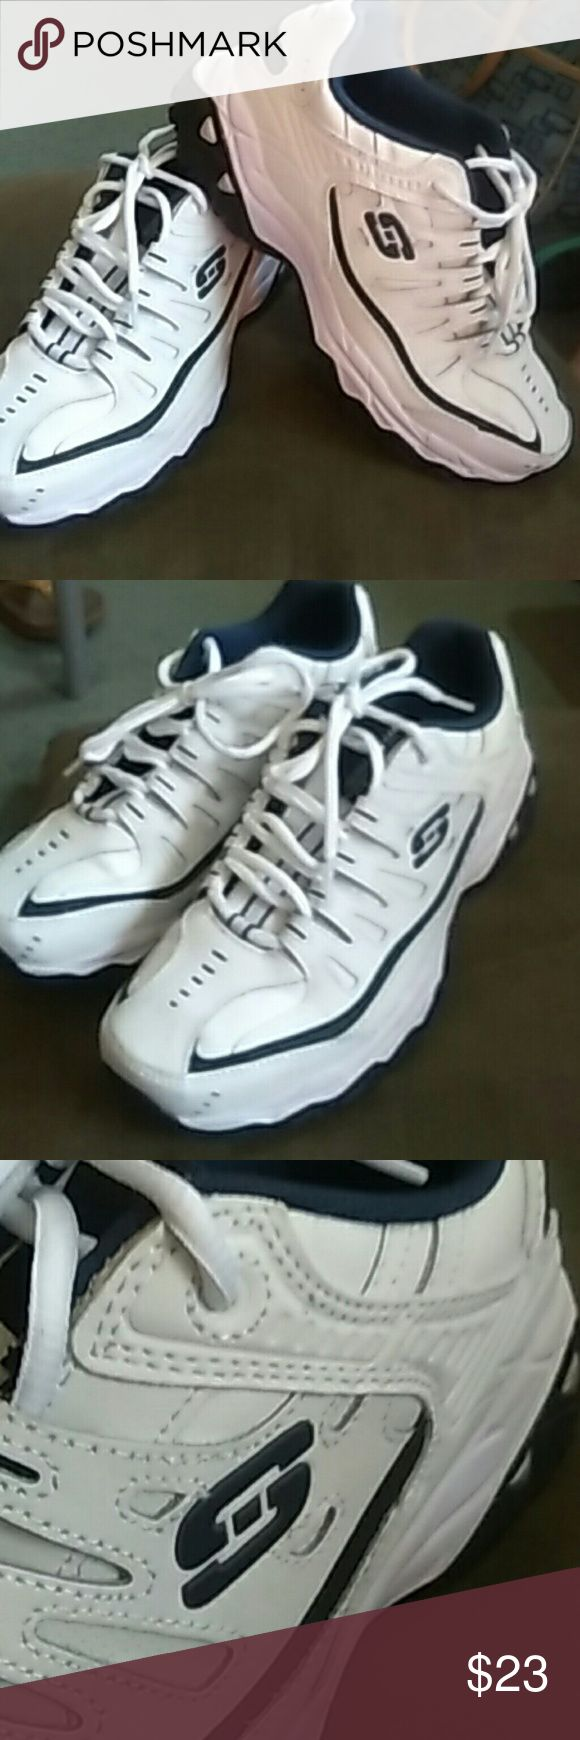 Men's Sketchers Used men's Sketchers in perfect condition worn one time. A great walking  shoe for the summer. Skechers Shoes Sneakers